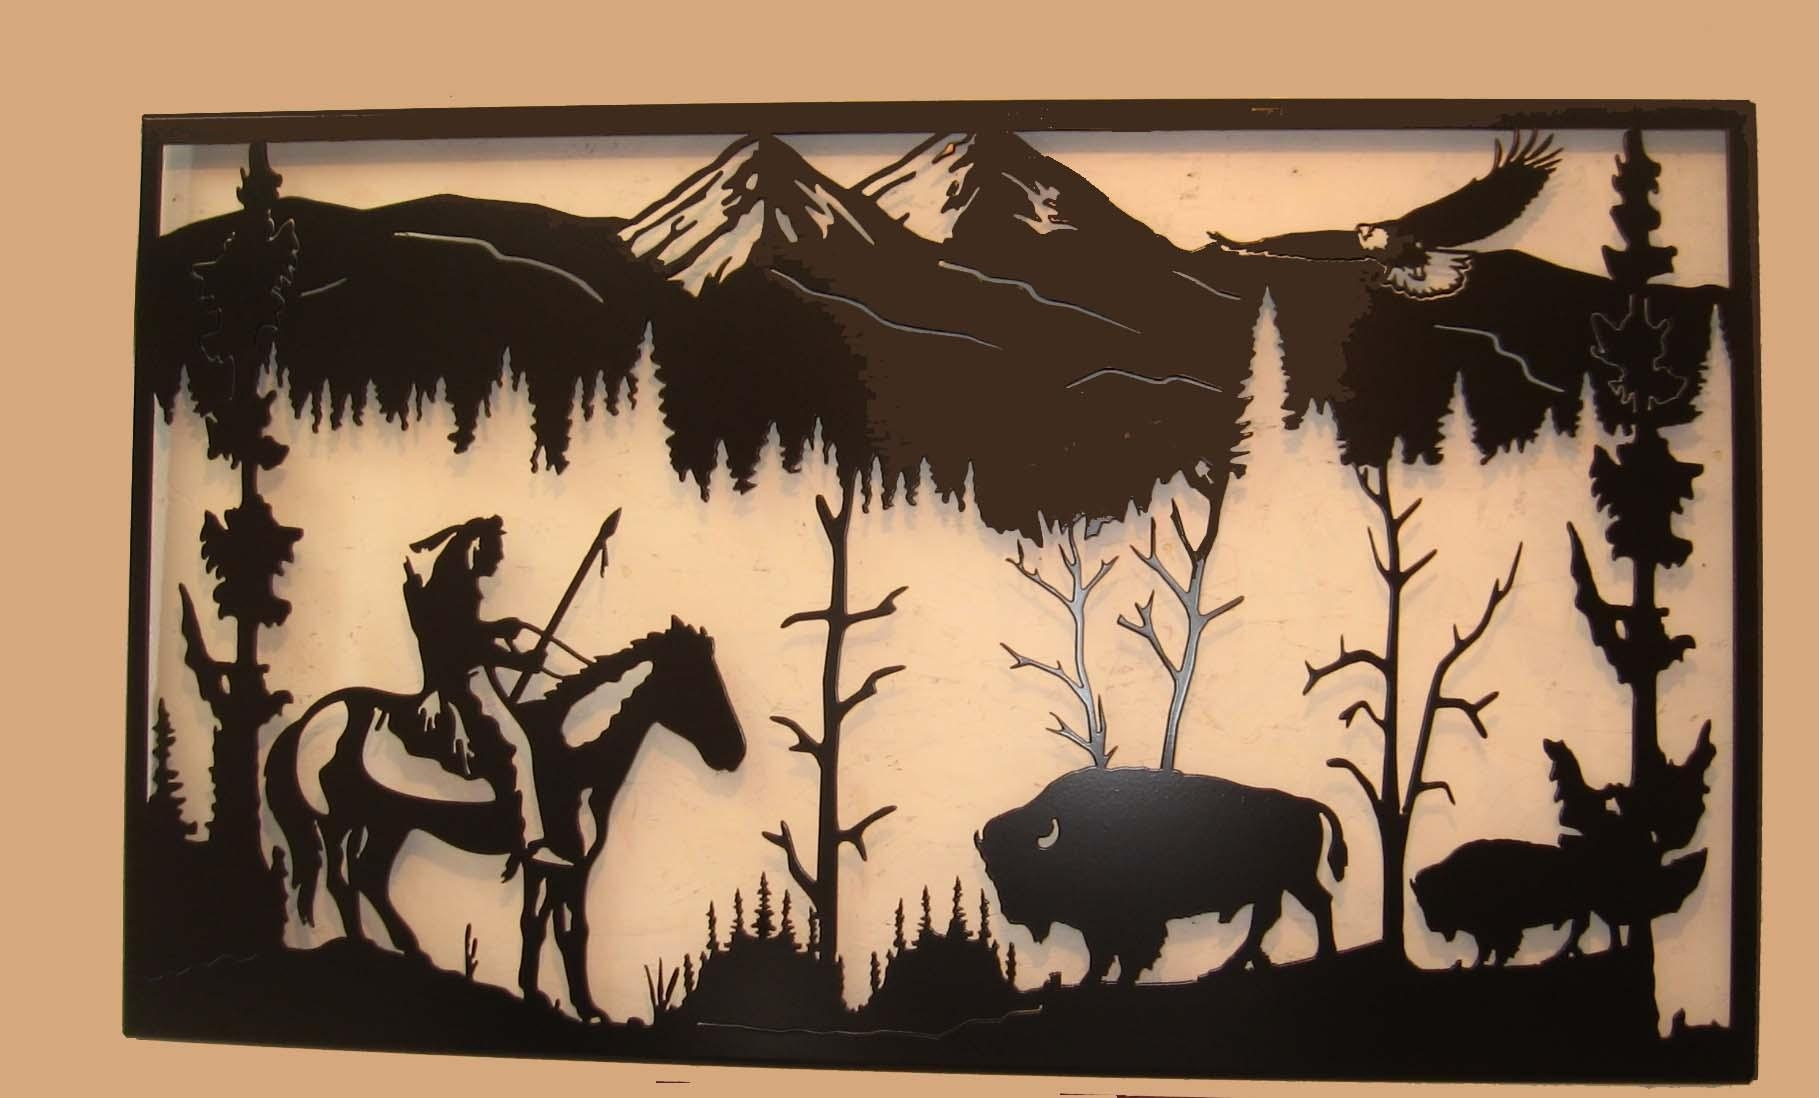 S & L Enterprises – Western Wall Art Pertaining To Western Metal Wall Art Silhouettes (View 7 of 20)